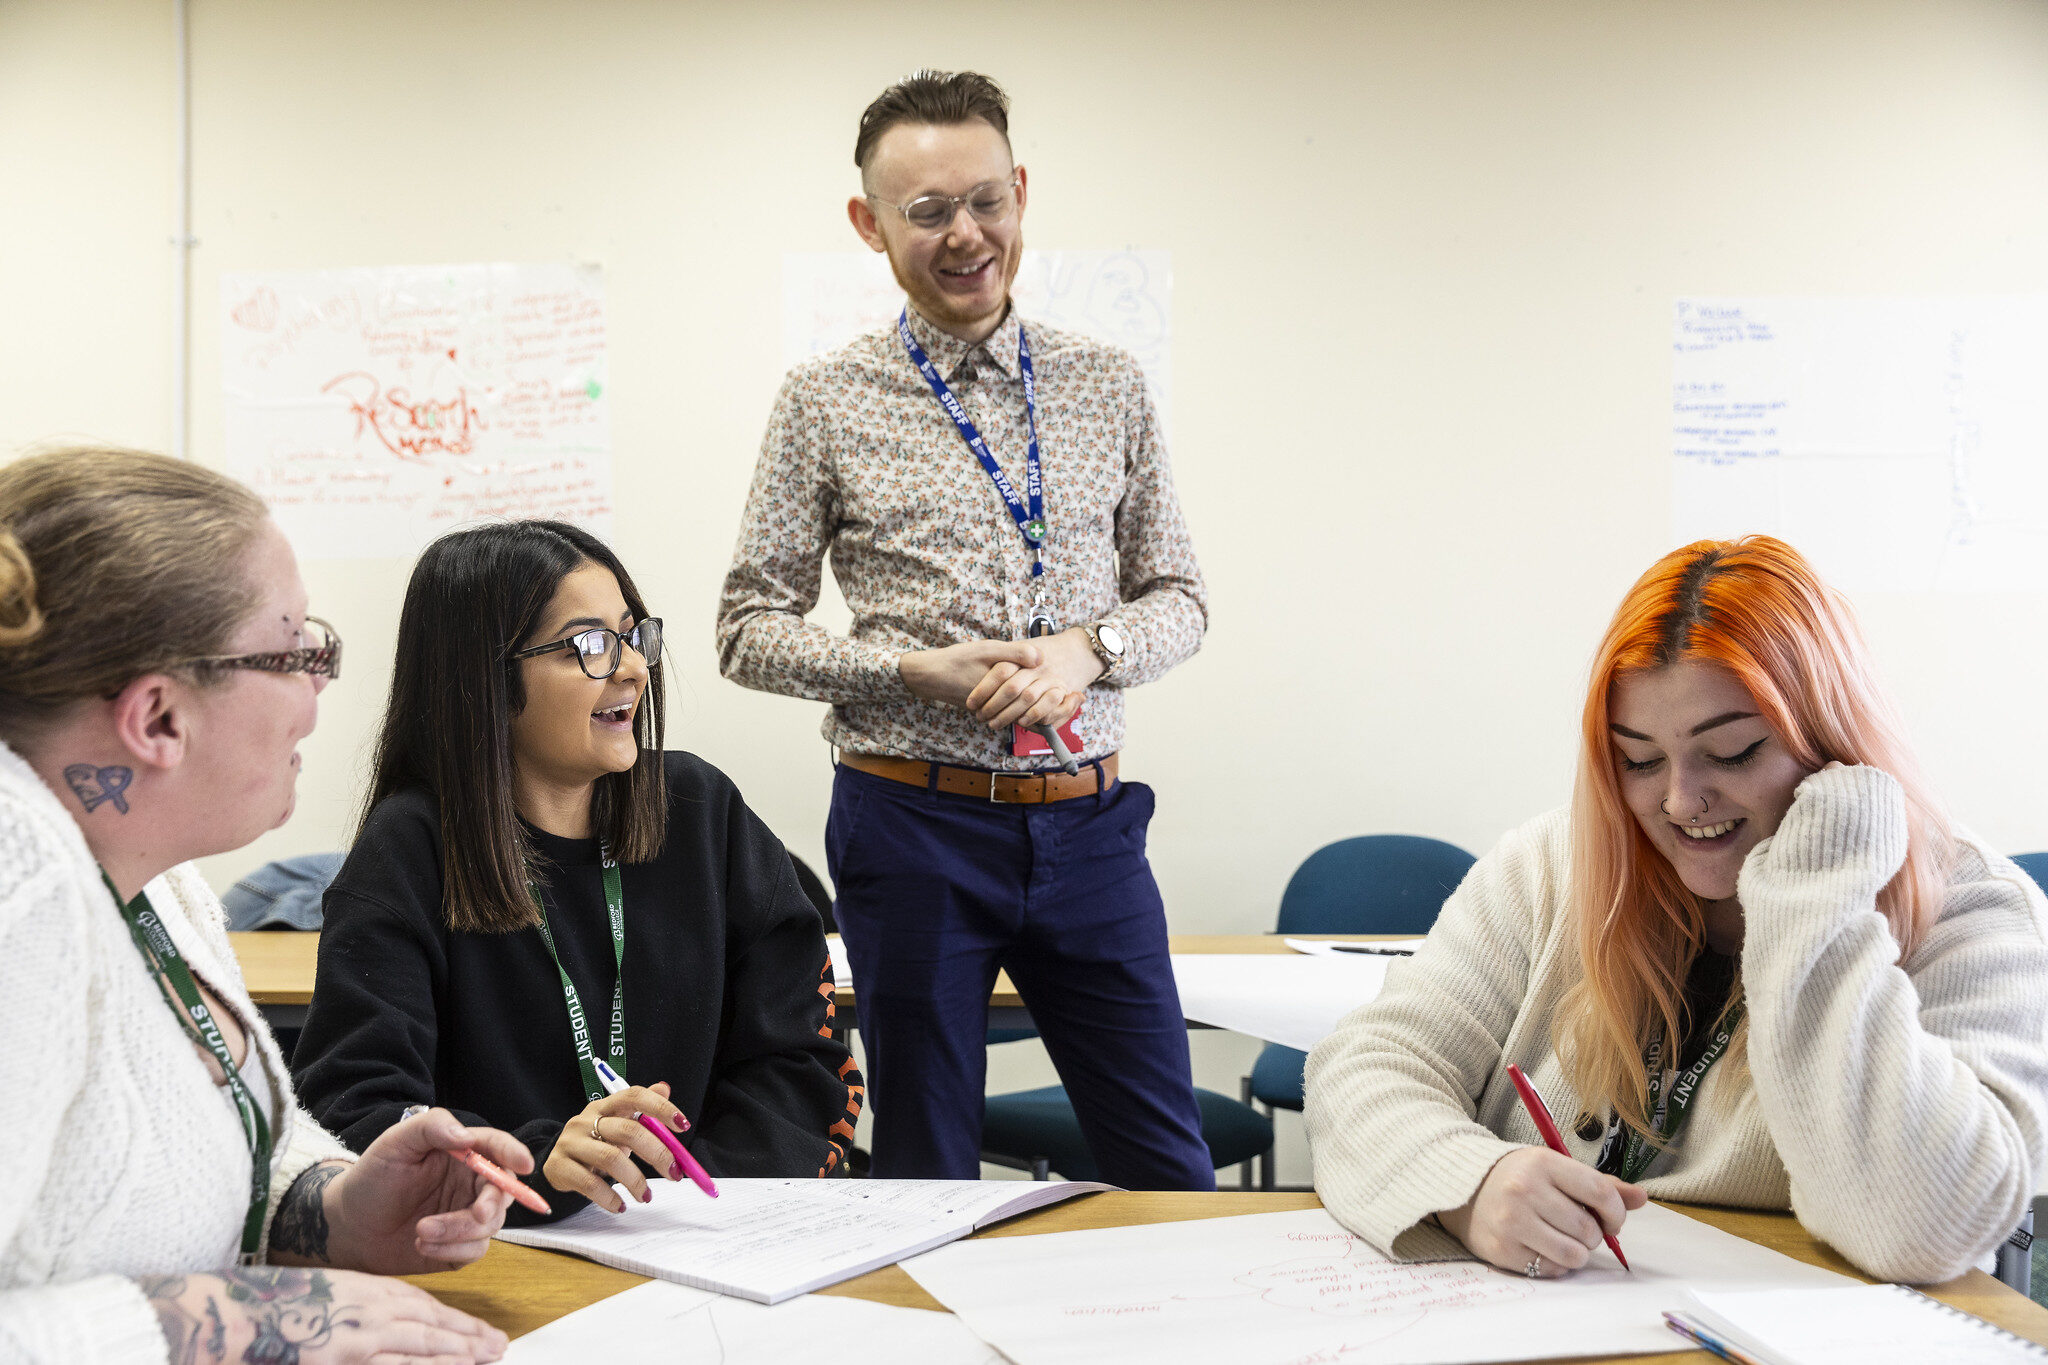 Access to University students at Bedford College